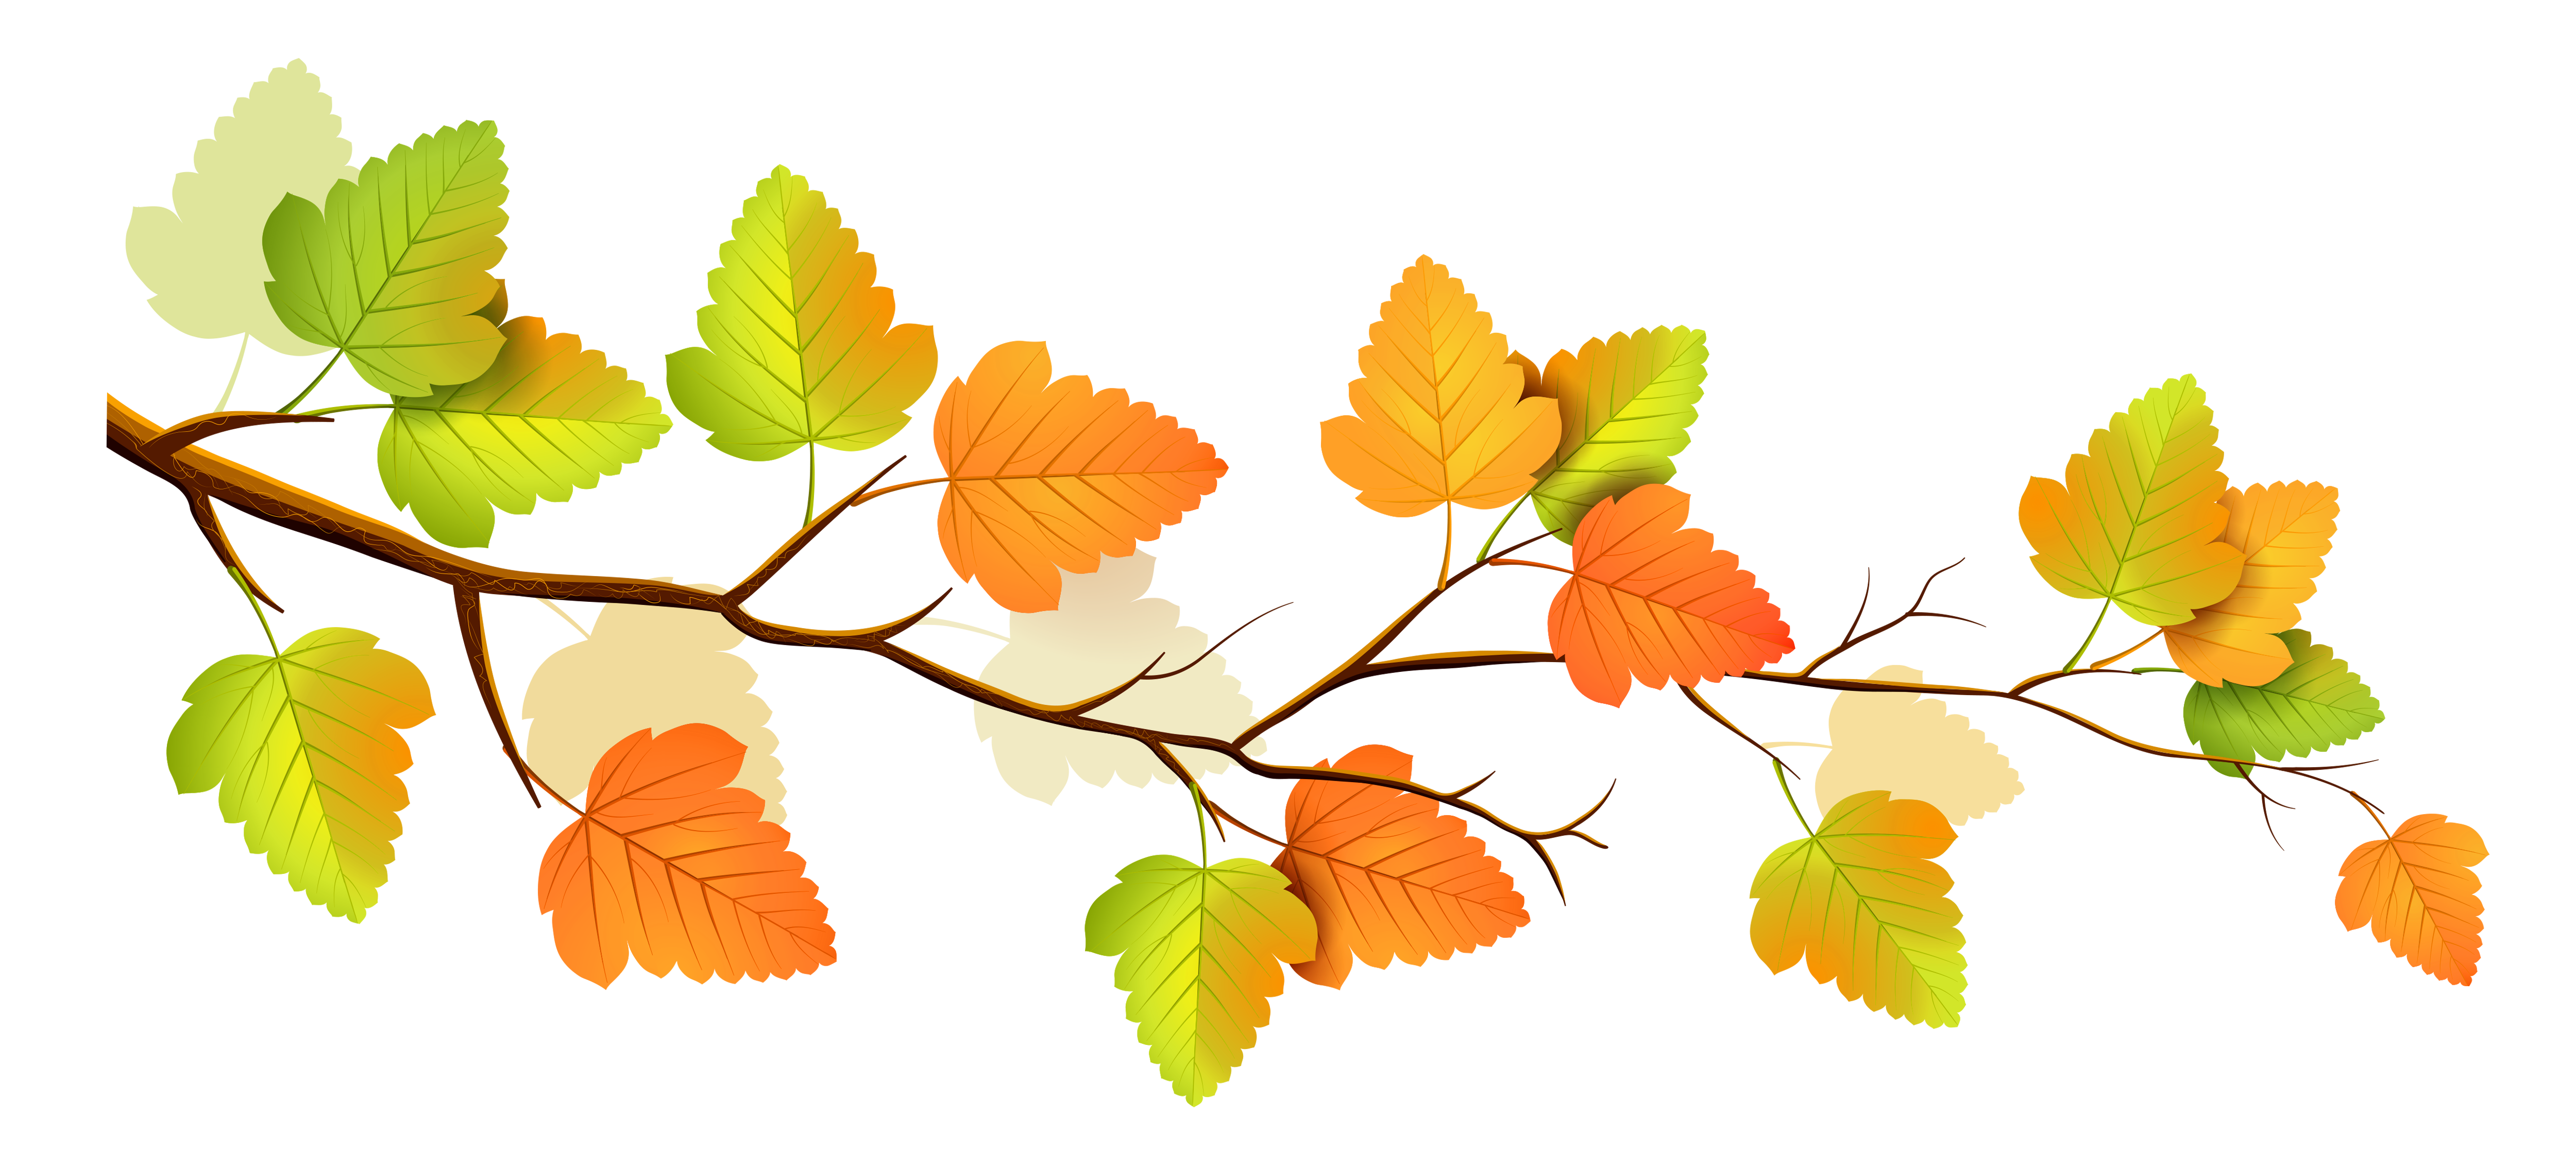 free autumn clipart free download best free autumn clipart on rh clipartmag com